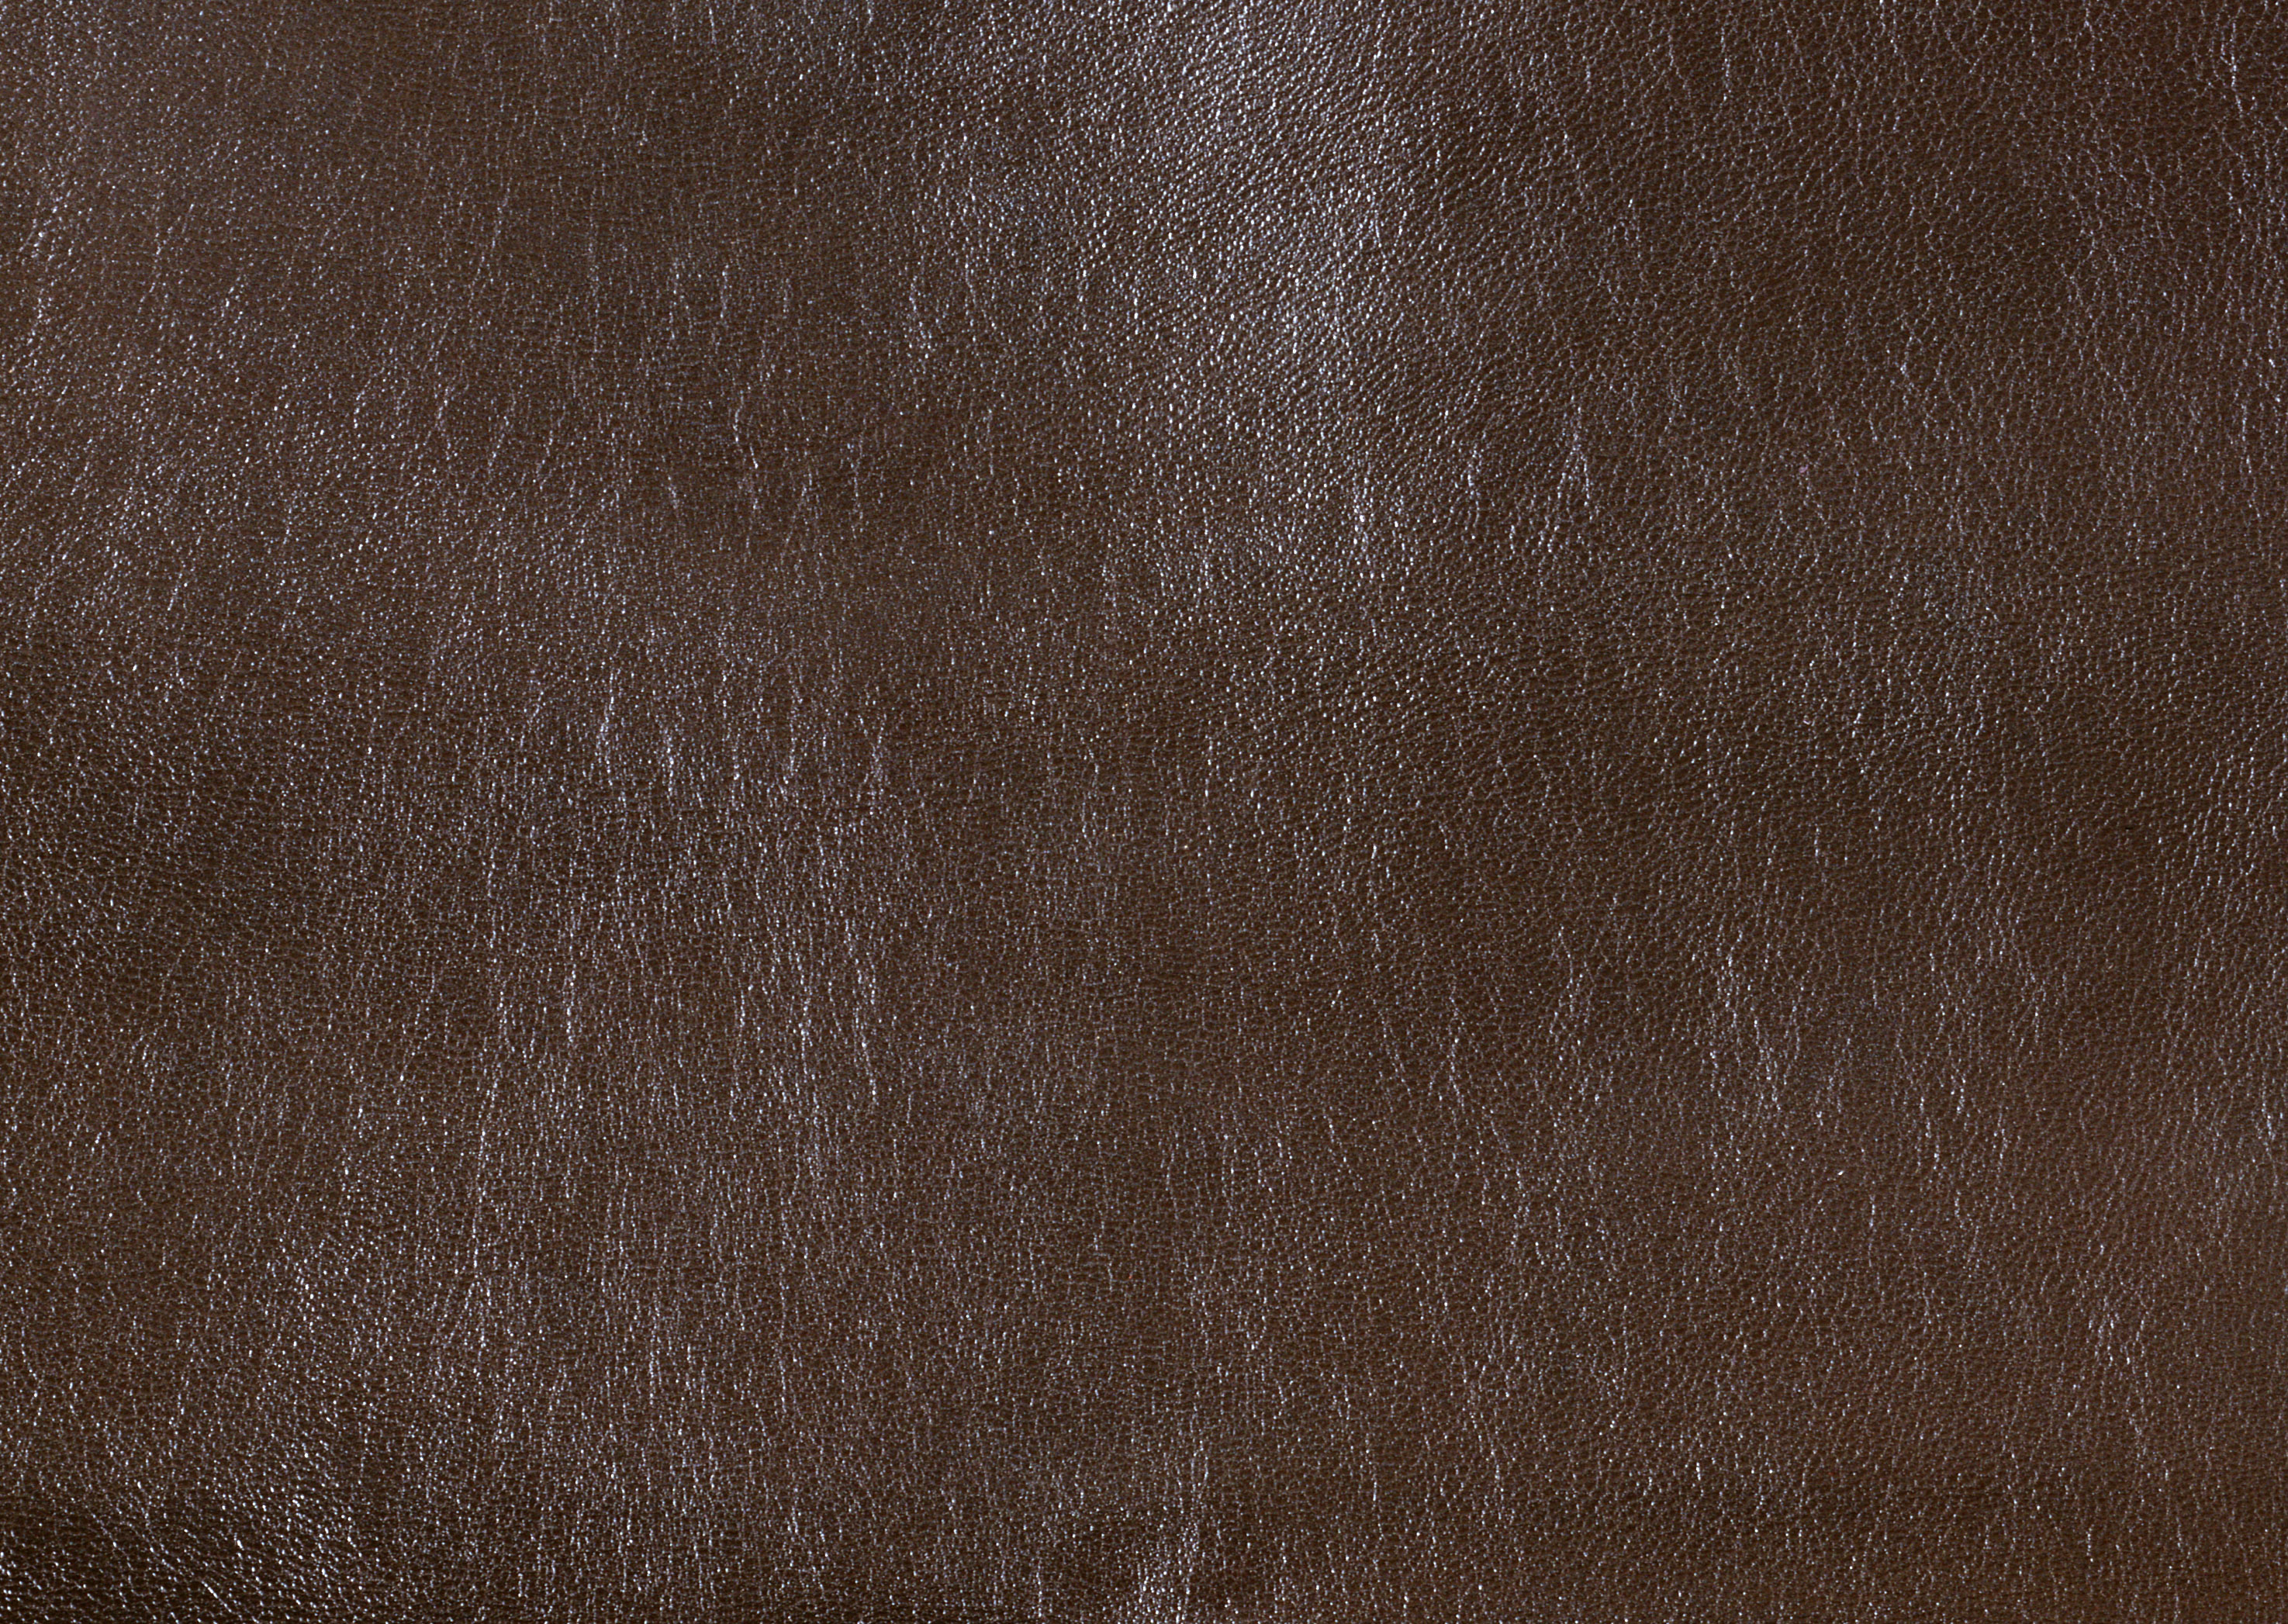 Brown leather texture background image free download for Texture background free download